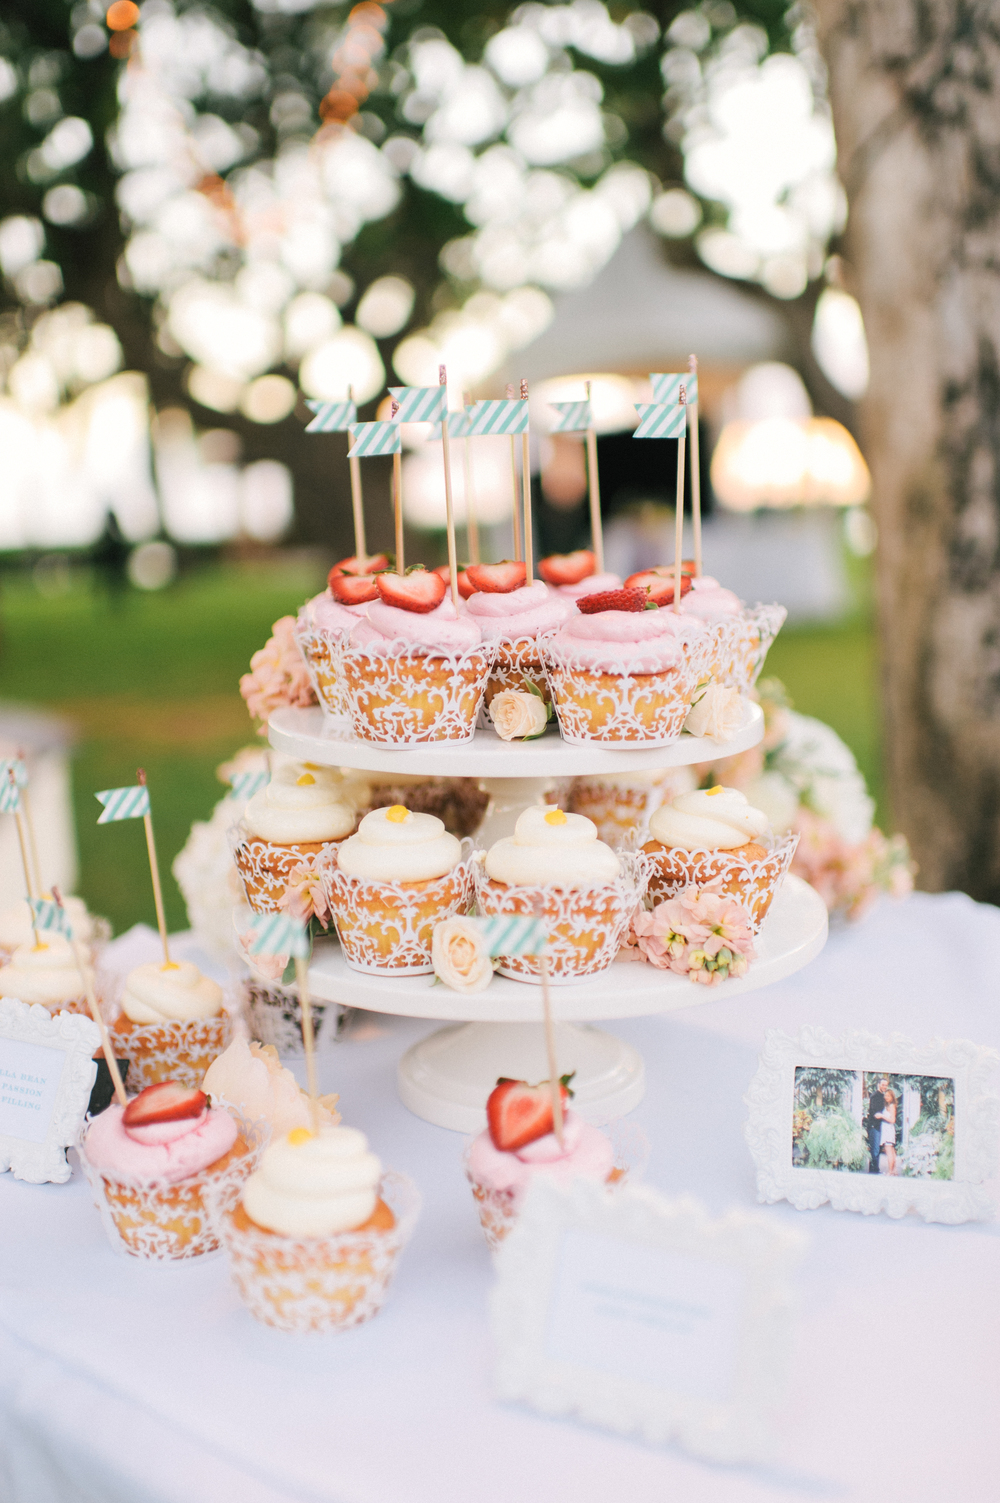 Michelle Garibay Events | Modern Vintage Hawaii Wedding | Oahu Destination Wedding | Peach and Gray Wedding | Dessert Bar